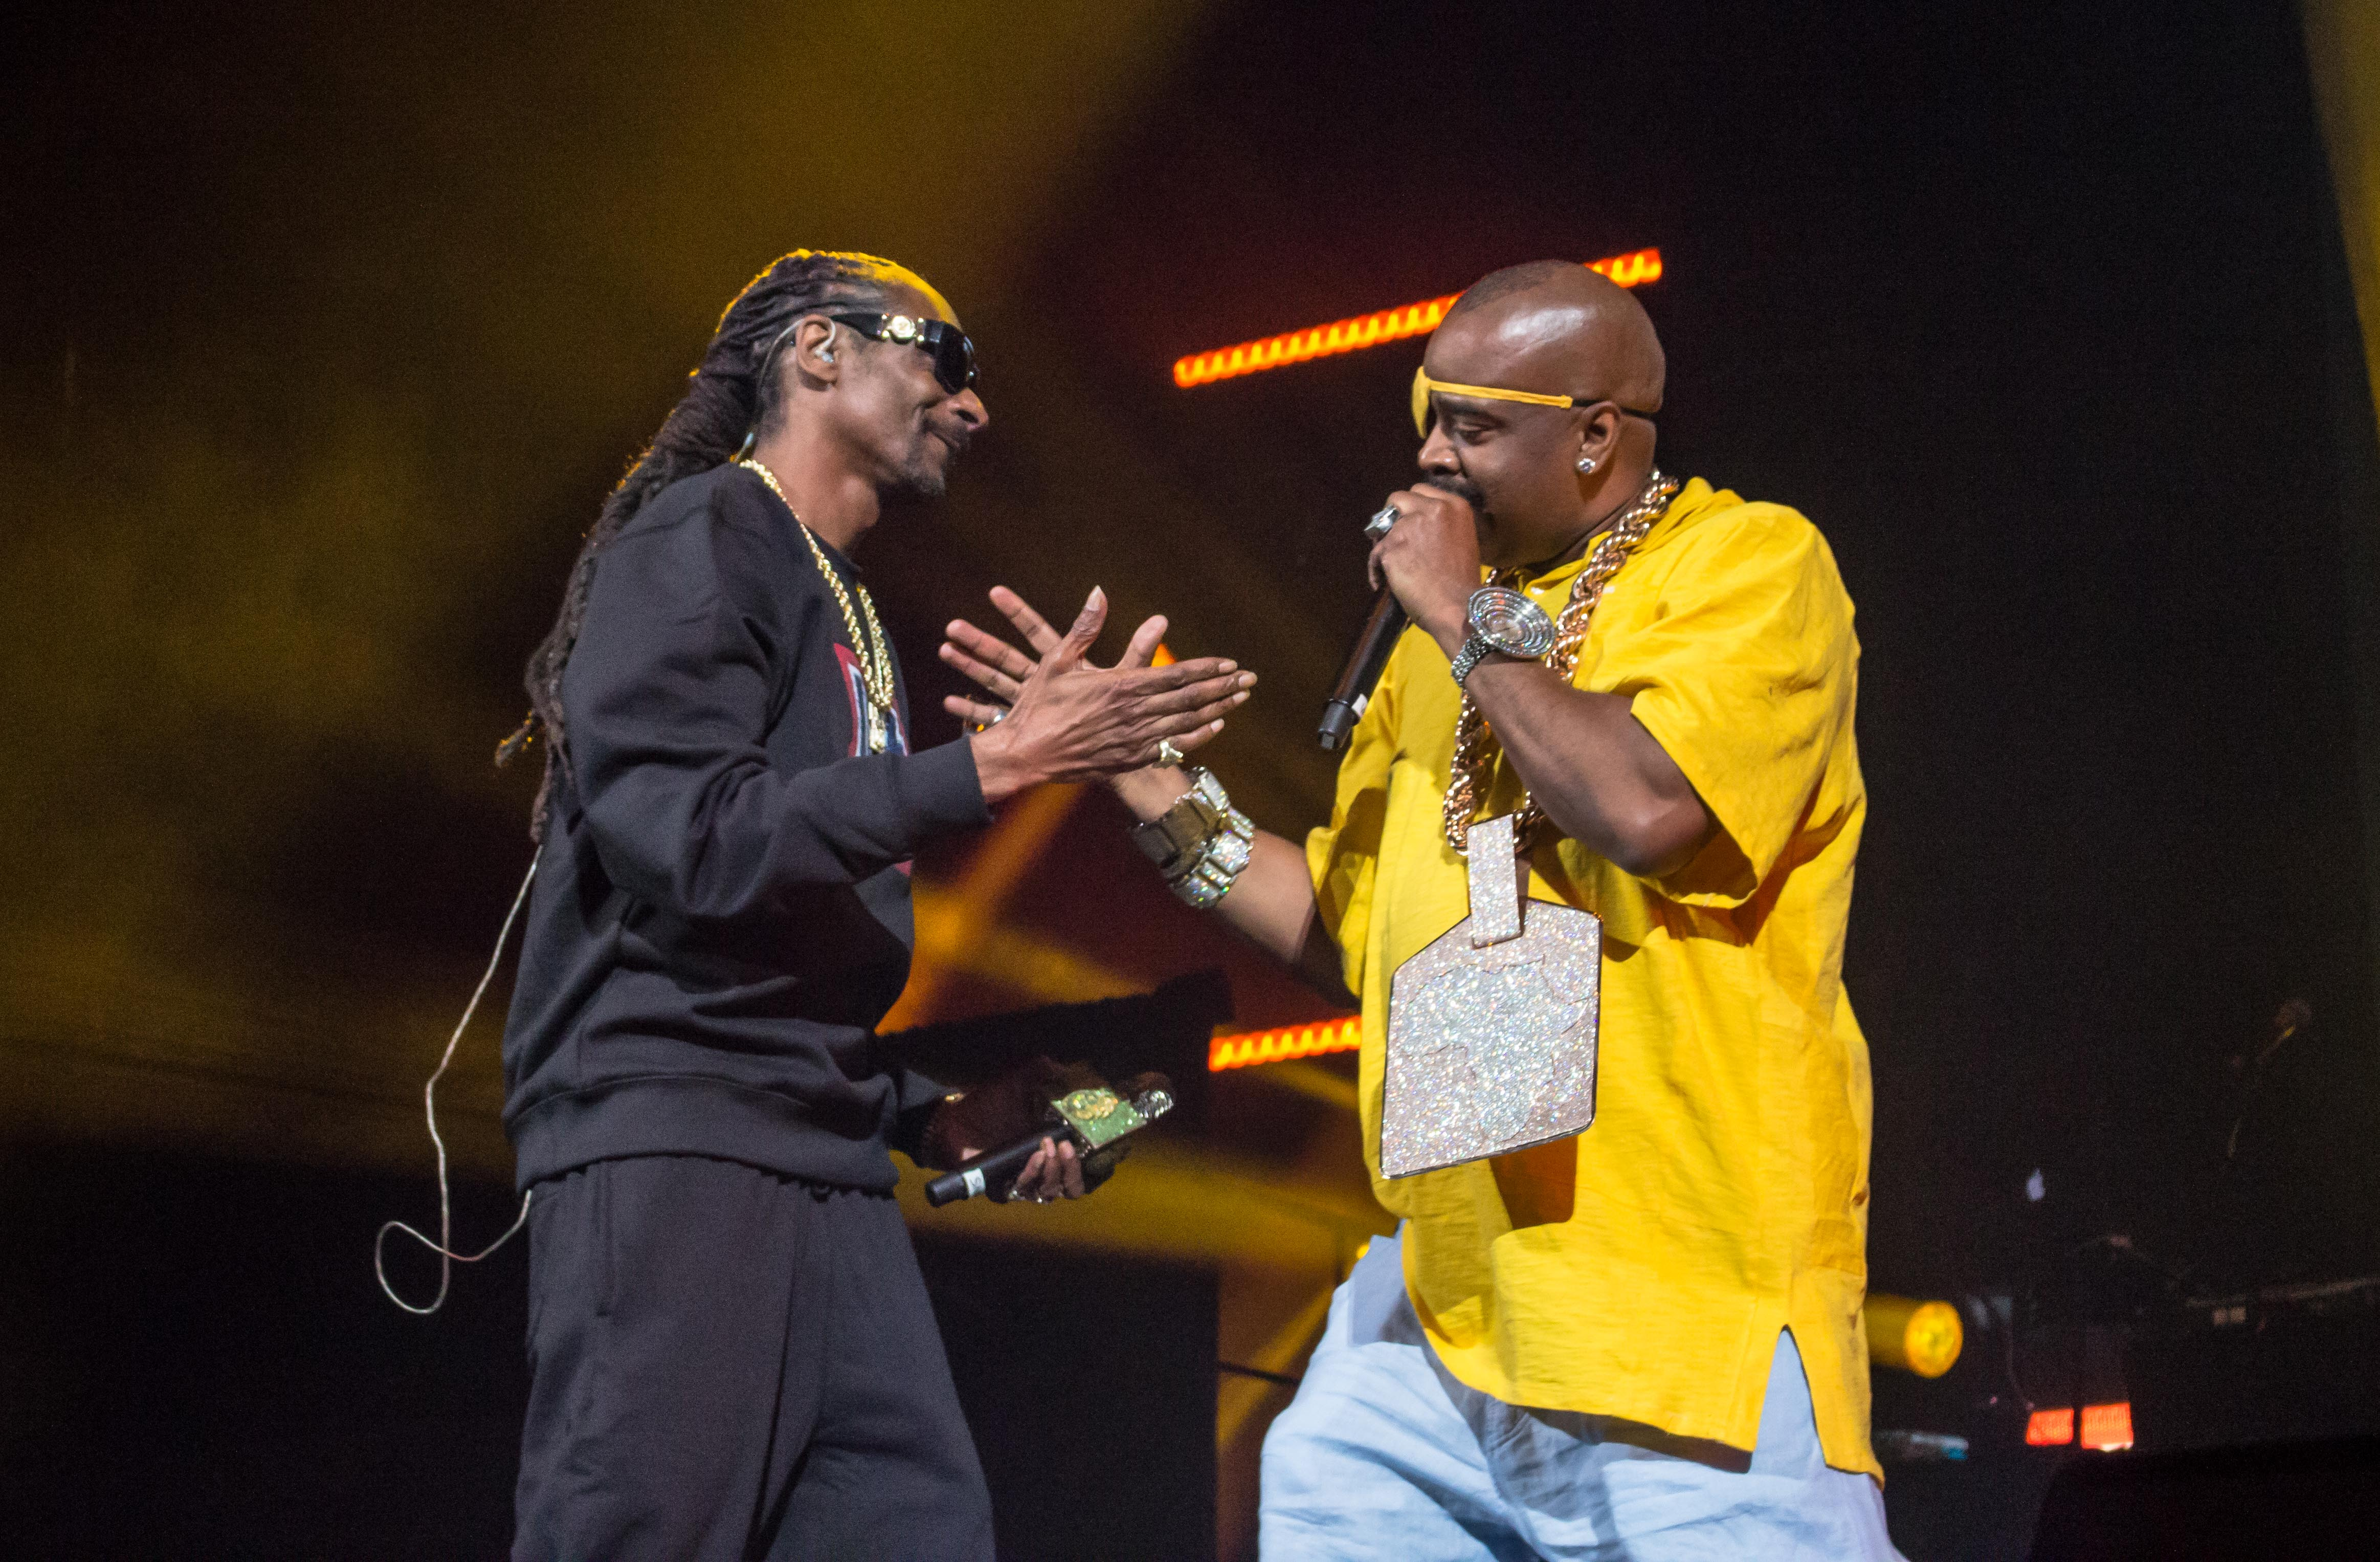 DMX, Snoop Dogg, Cam'ron, 50 Cent, And More Perform Classics